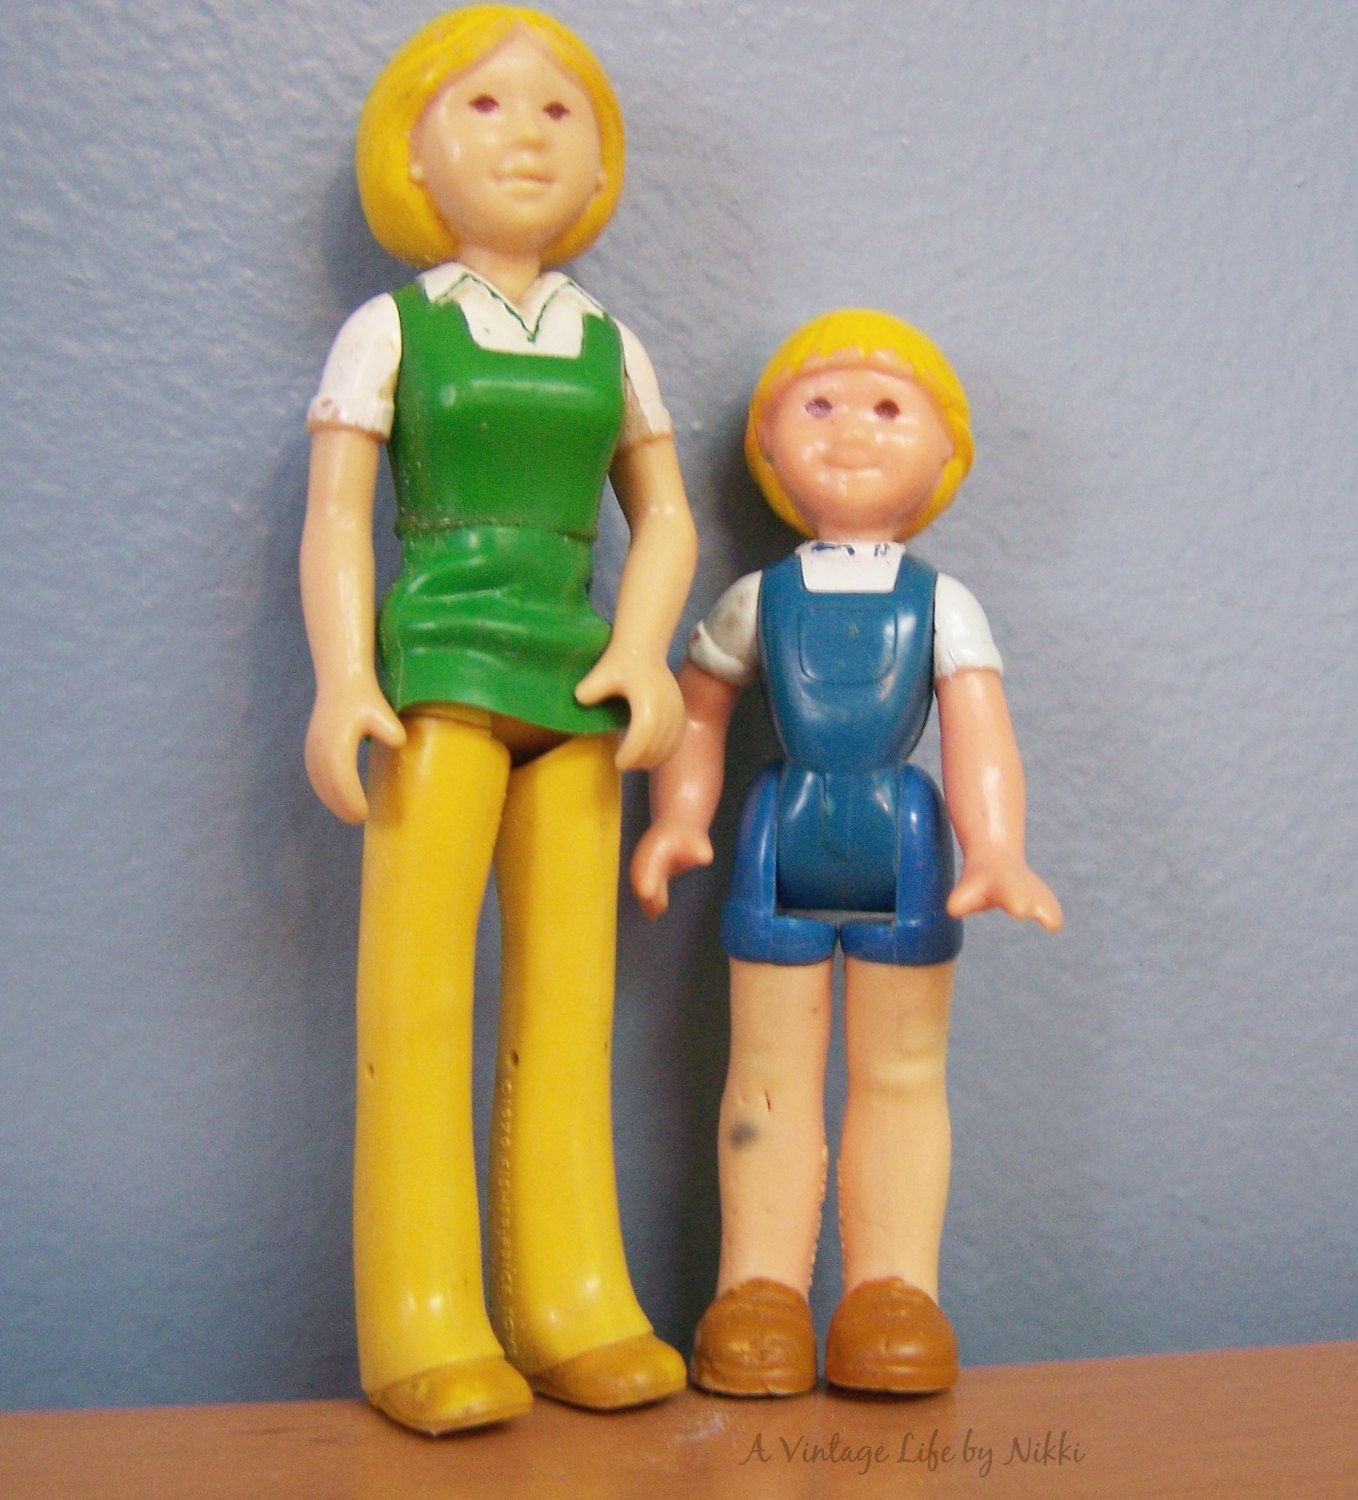 Vintage 1979/1981 Fisher Price Dollhouse Family figures – Mom and Child, blond by AVintageLifeByNikki on Etsy